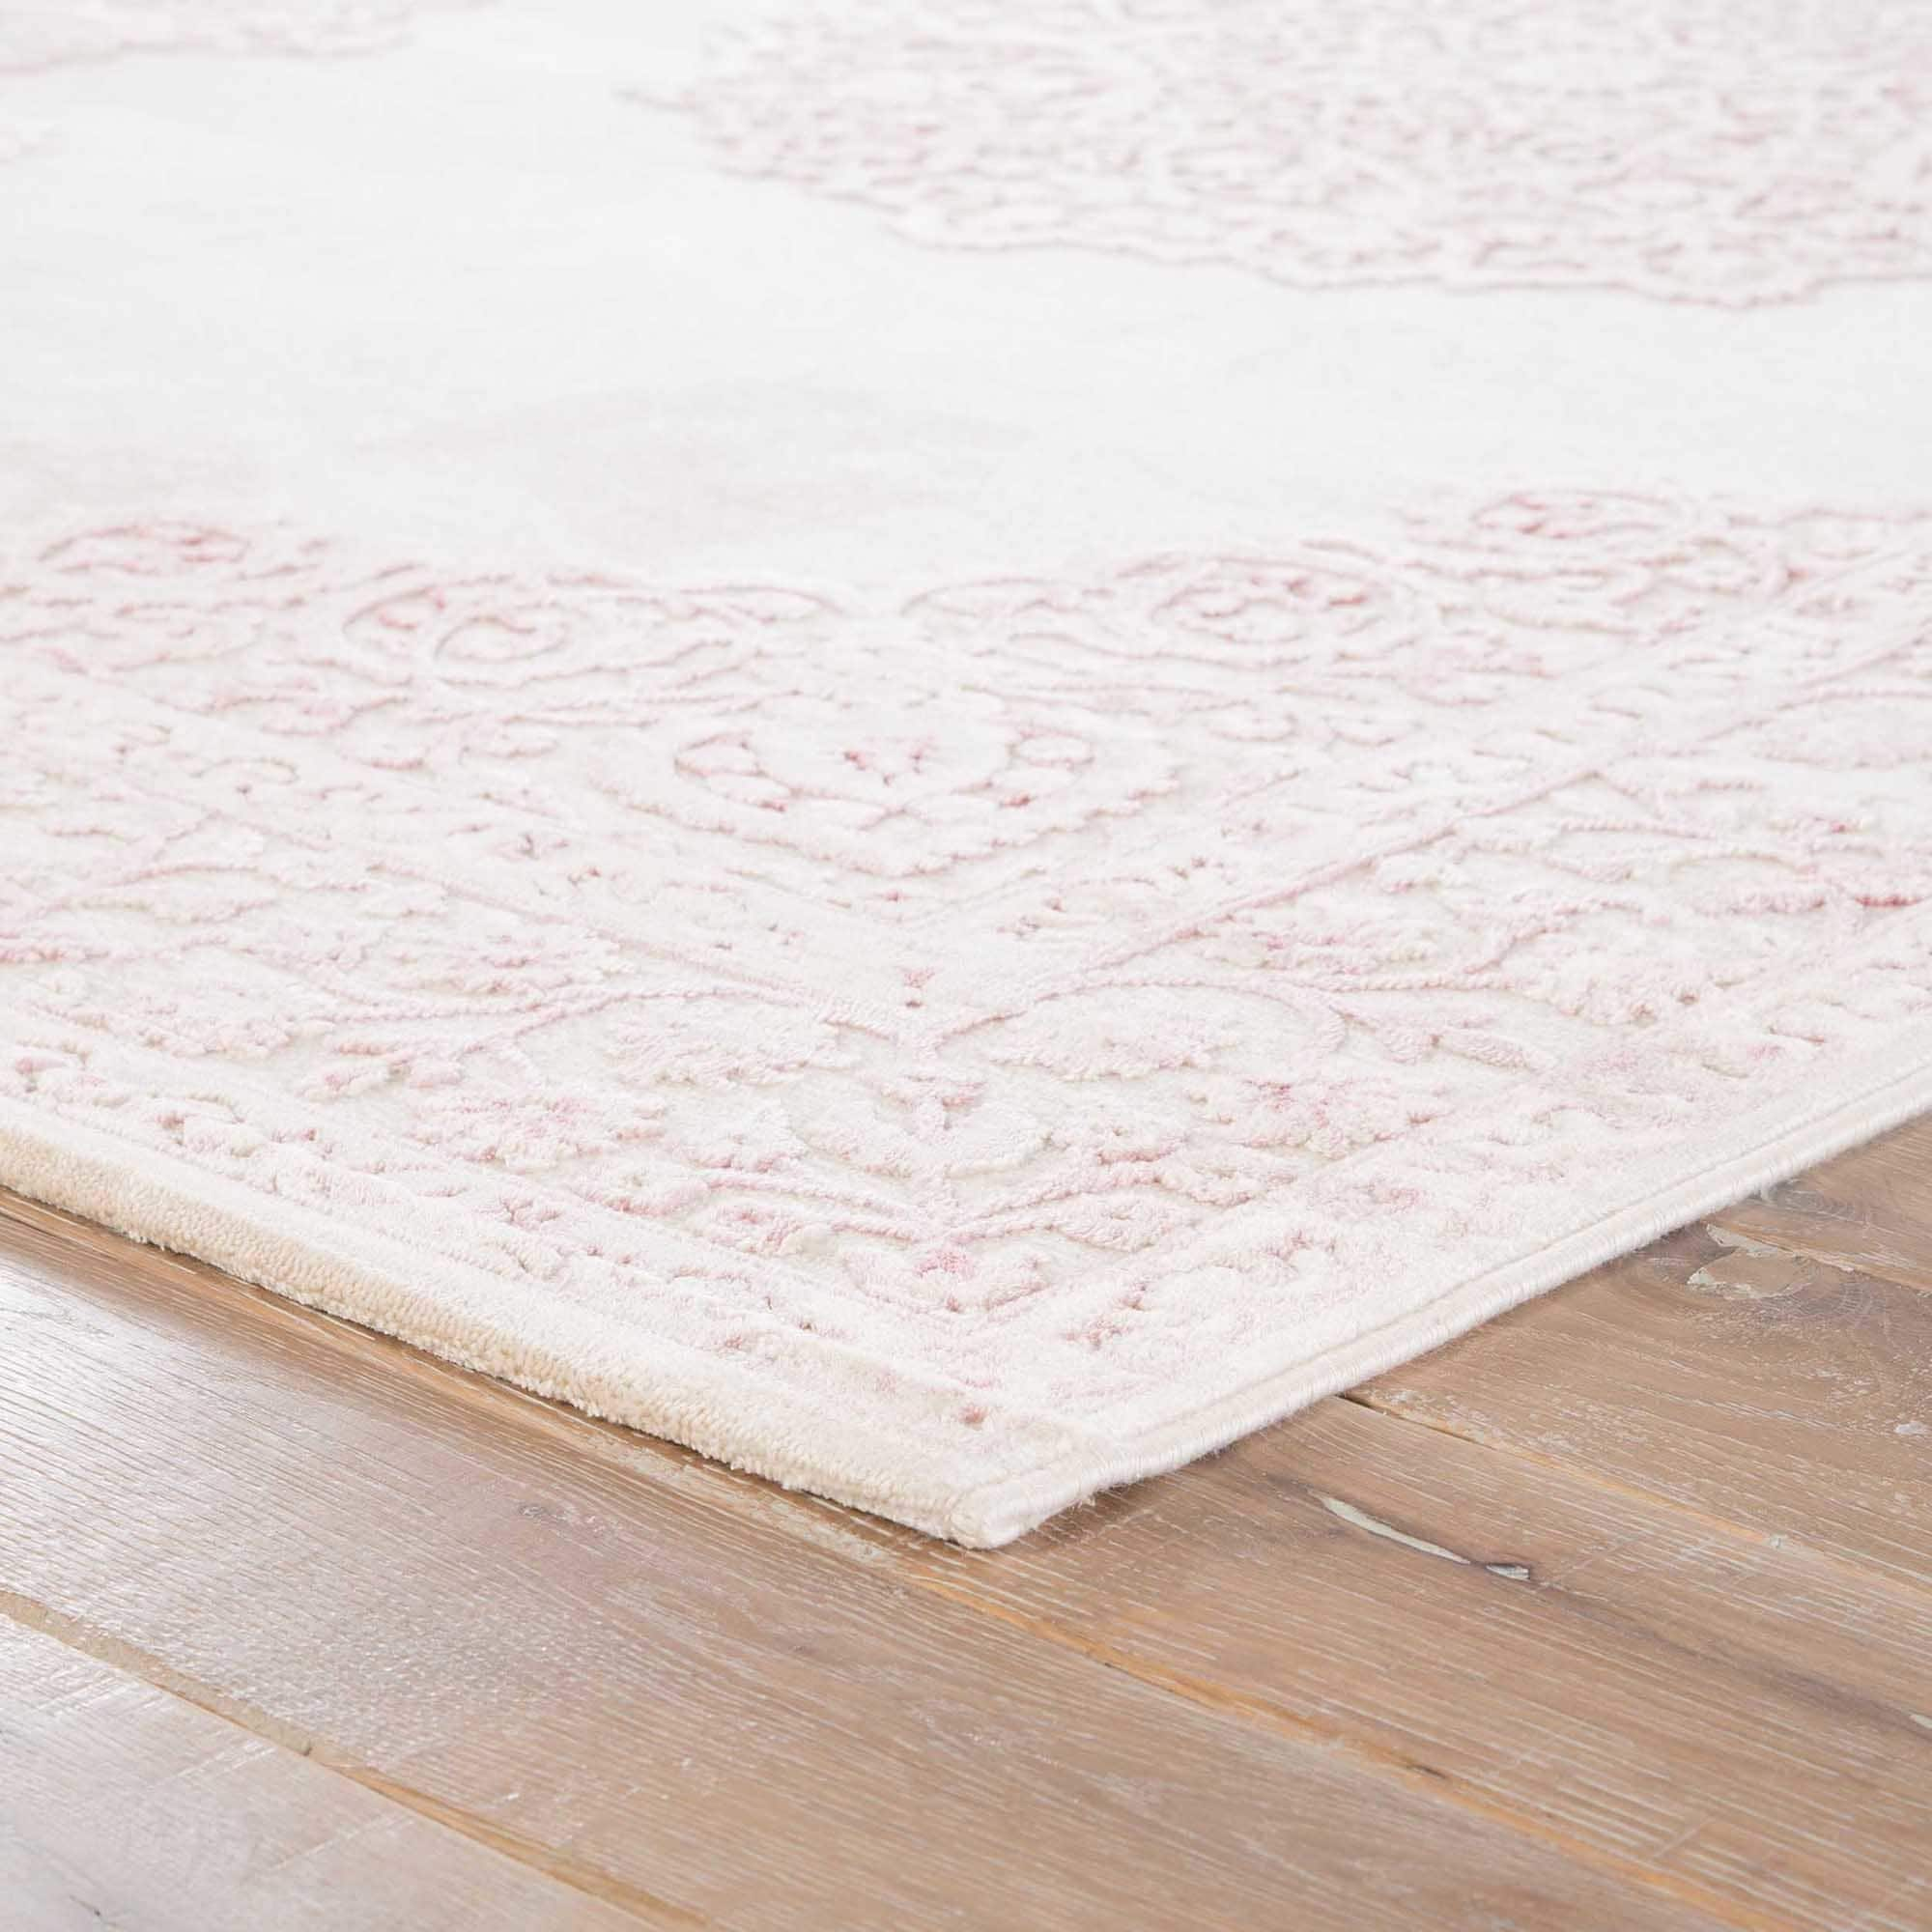 white area rugs maison rouge edith medallion pink/ white area rug - 5u0027 x 7u00276 JTVDUHQ